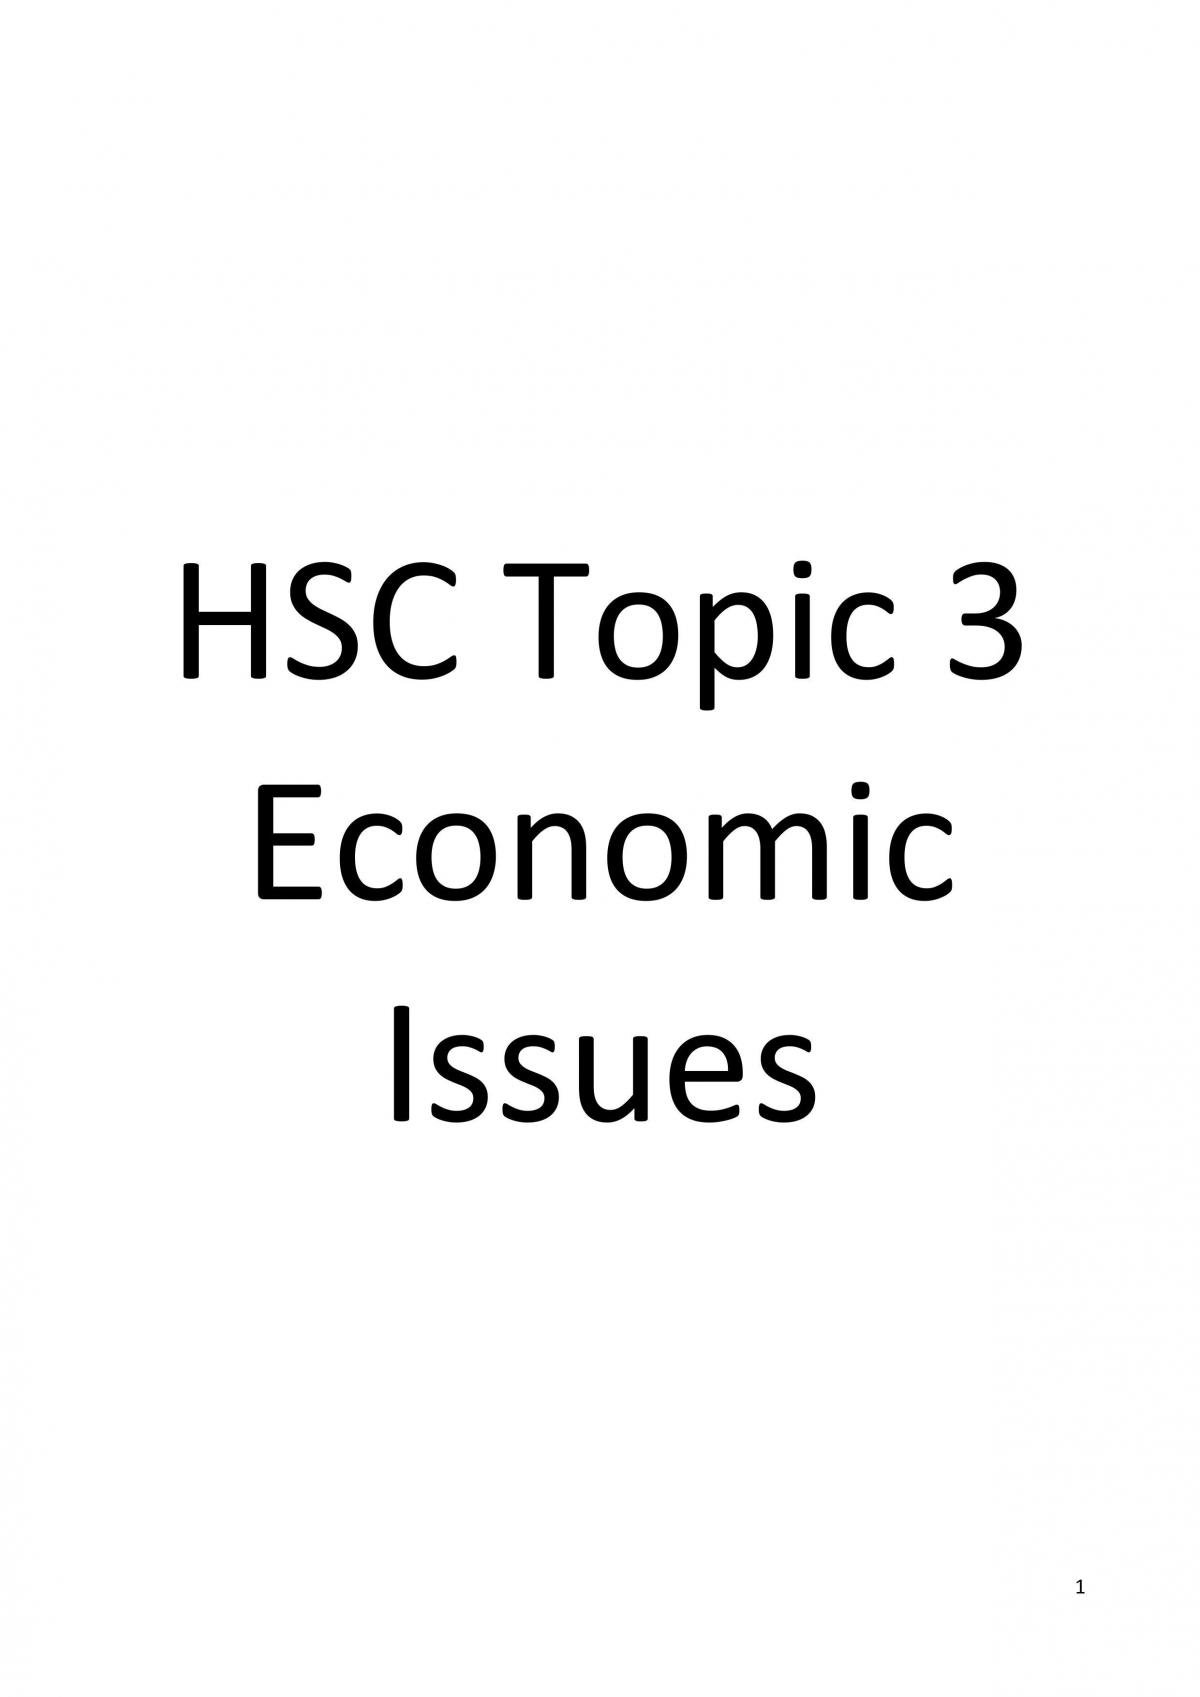 HSC Topic 3 Economic Issues - Page 1